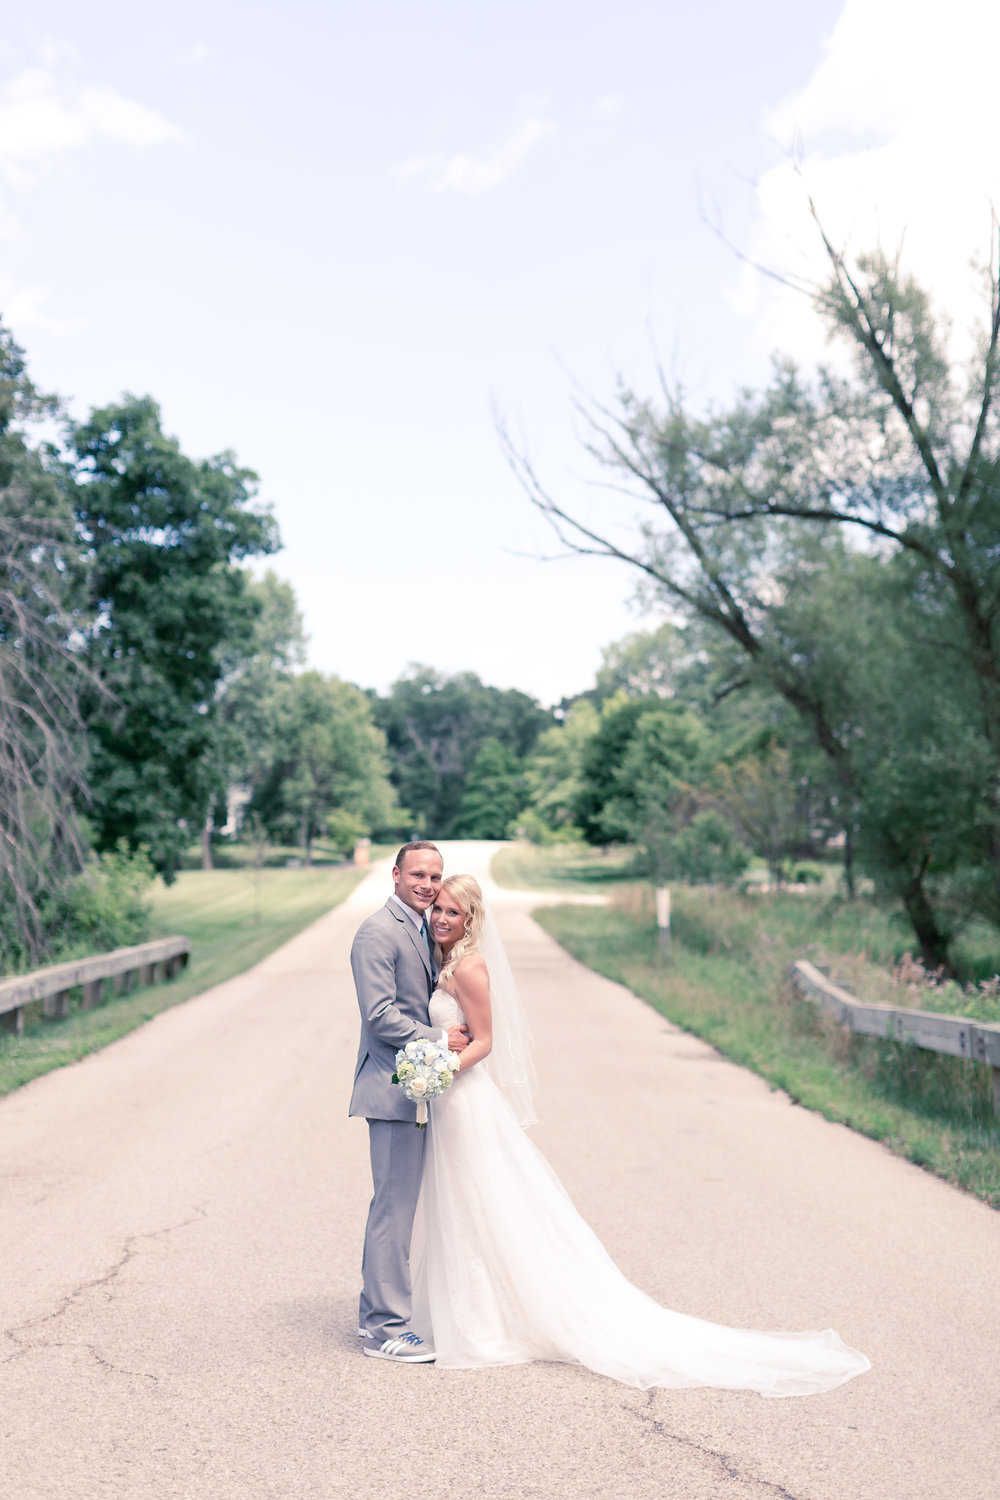 Kelly & Mike | Married | Lauren Alisse Photography -306.jpg